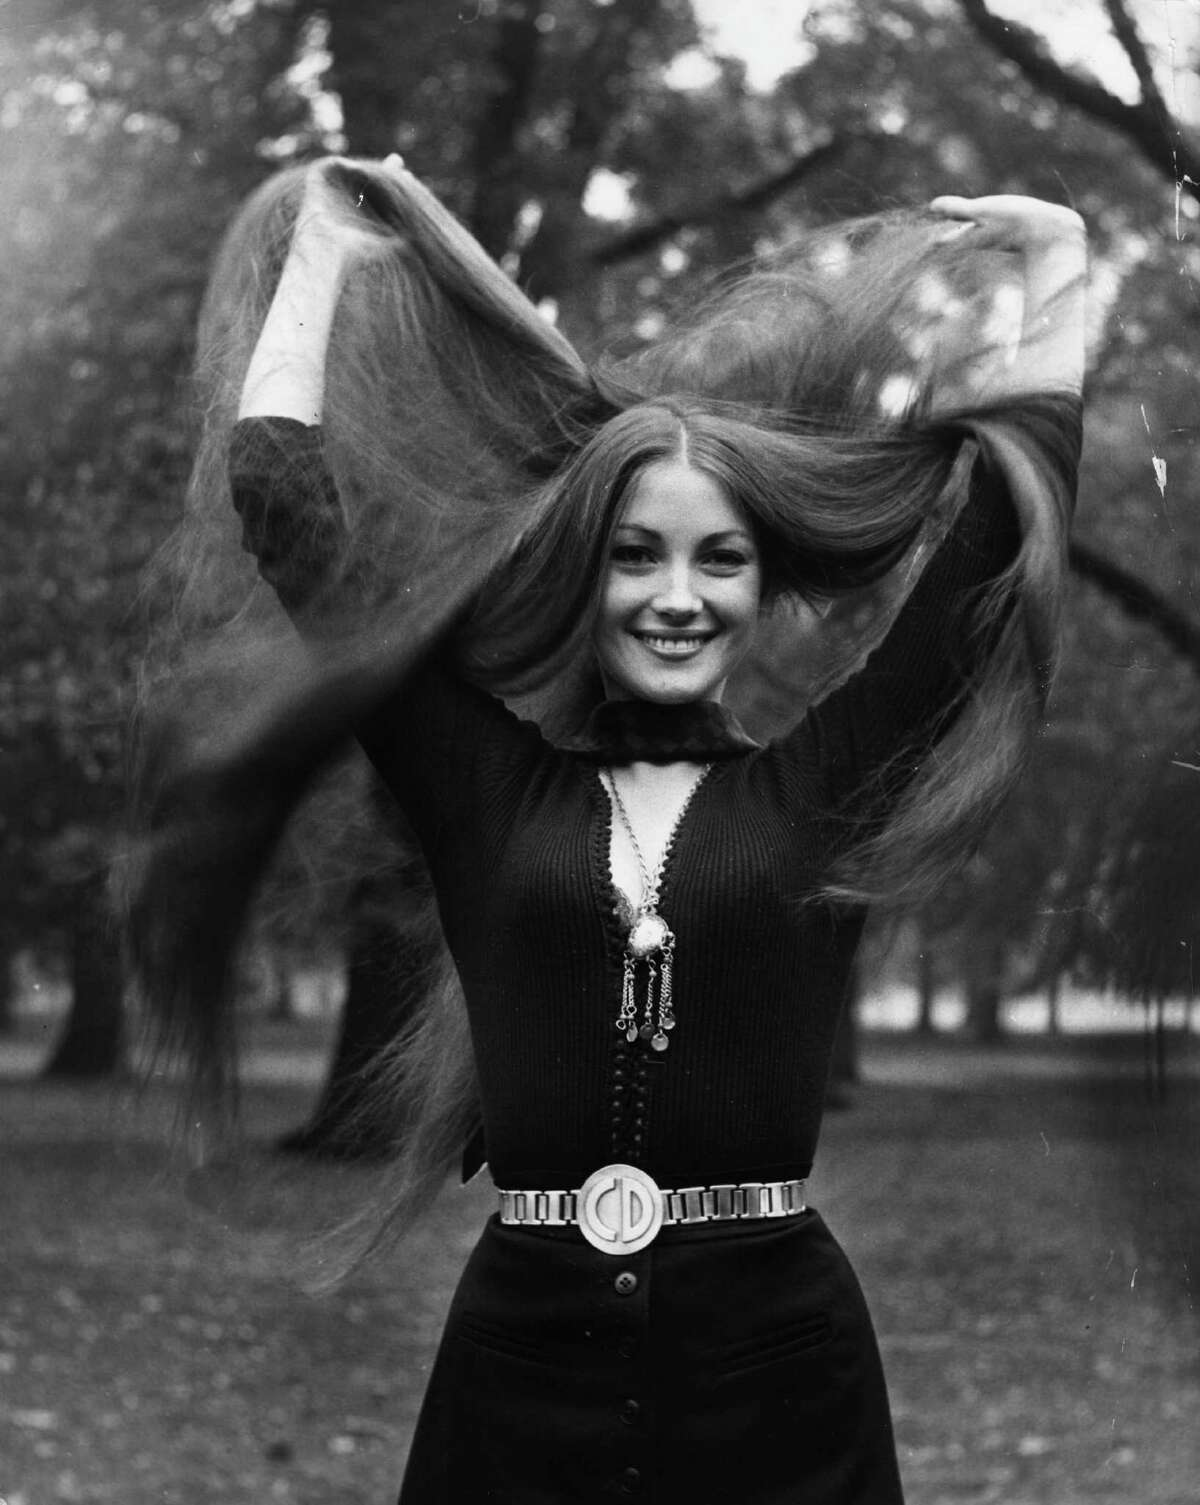 1972: Seymour shows off her signature long tresses in a London park.